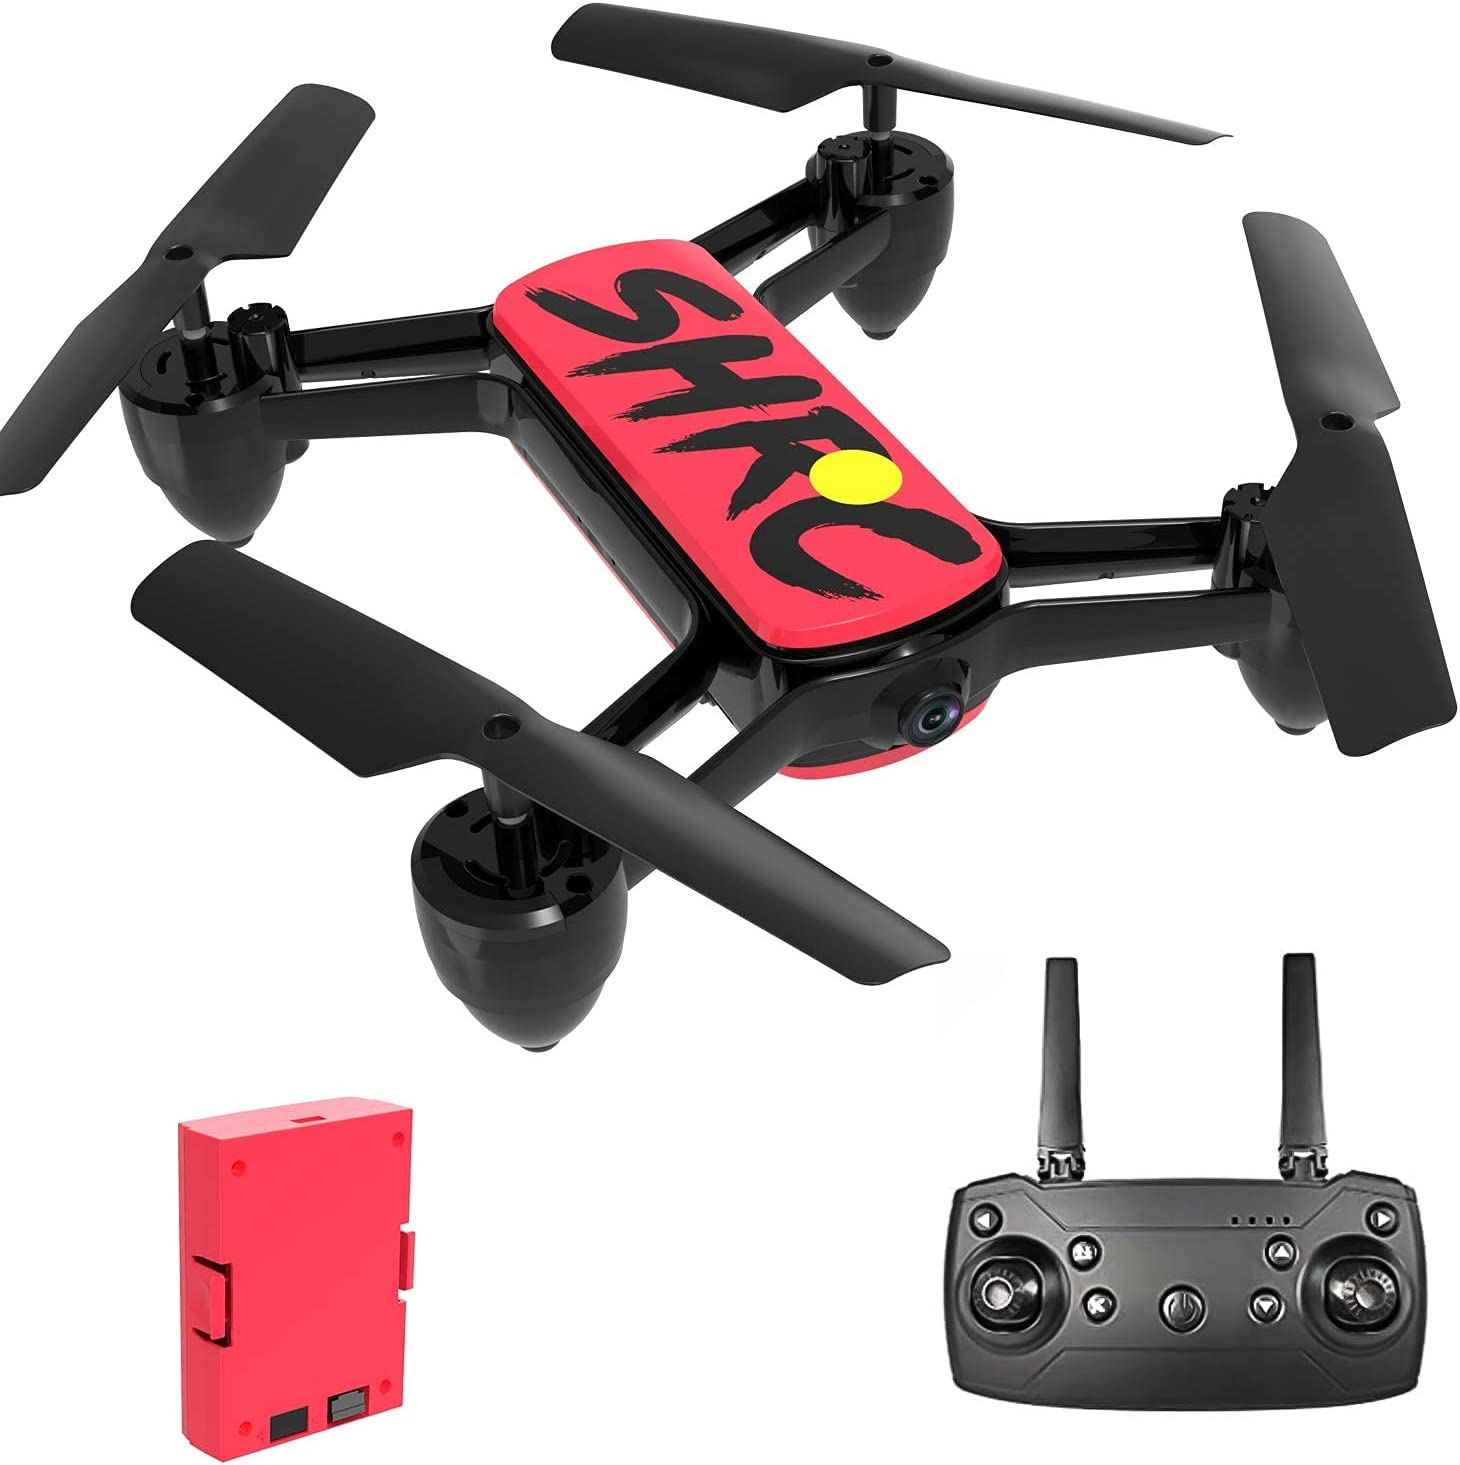 HR GPS Drone for Adults,Foldable Drones with 4K FHD Camera Live Video And GPS Return Home,Quadcopter with Altitude Hold,Follow Me,Includes Carrying Bag